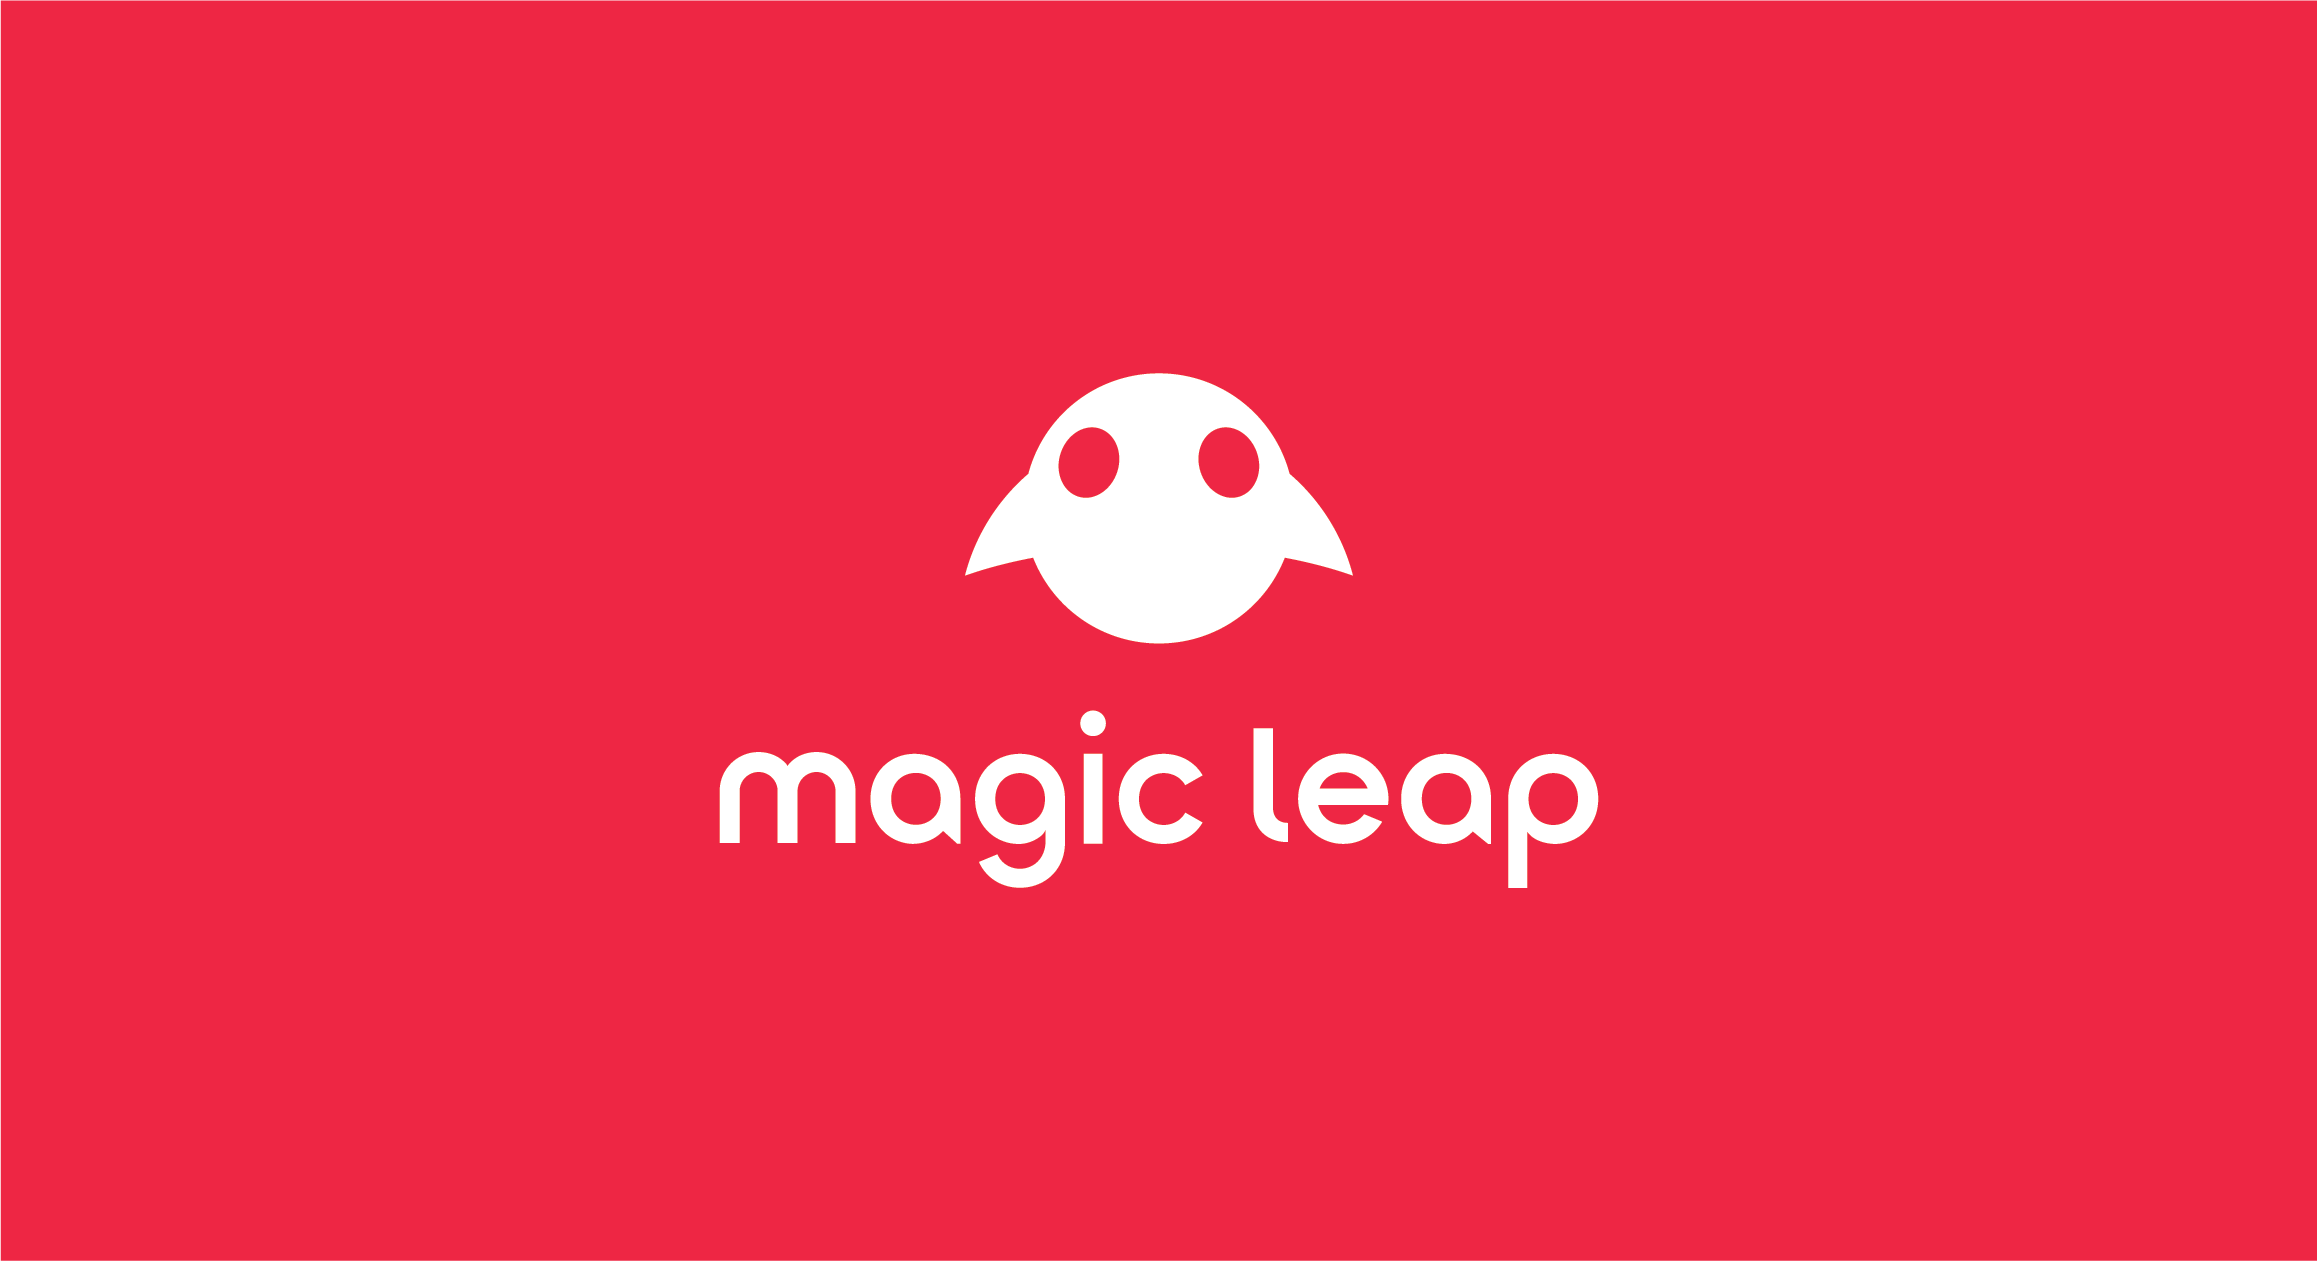 Microsoft Exec Peggy Johnson to Take Over as CEO of Magic Leap